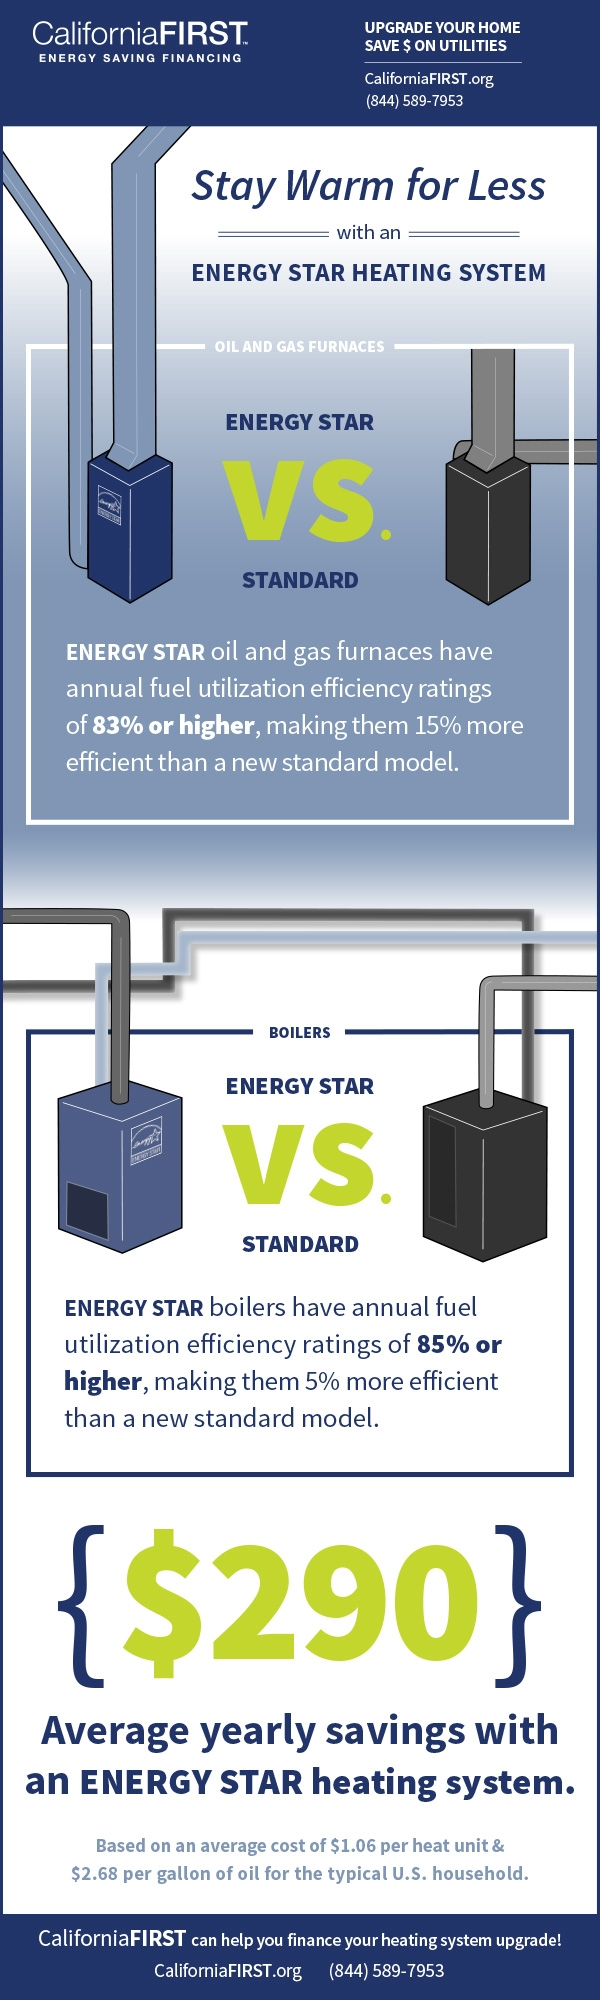 CaliforniaFIRST Energy Star